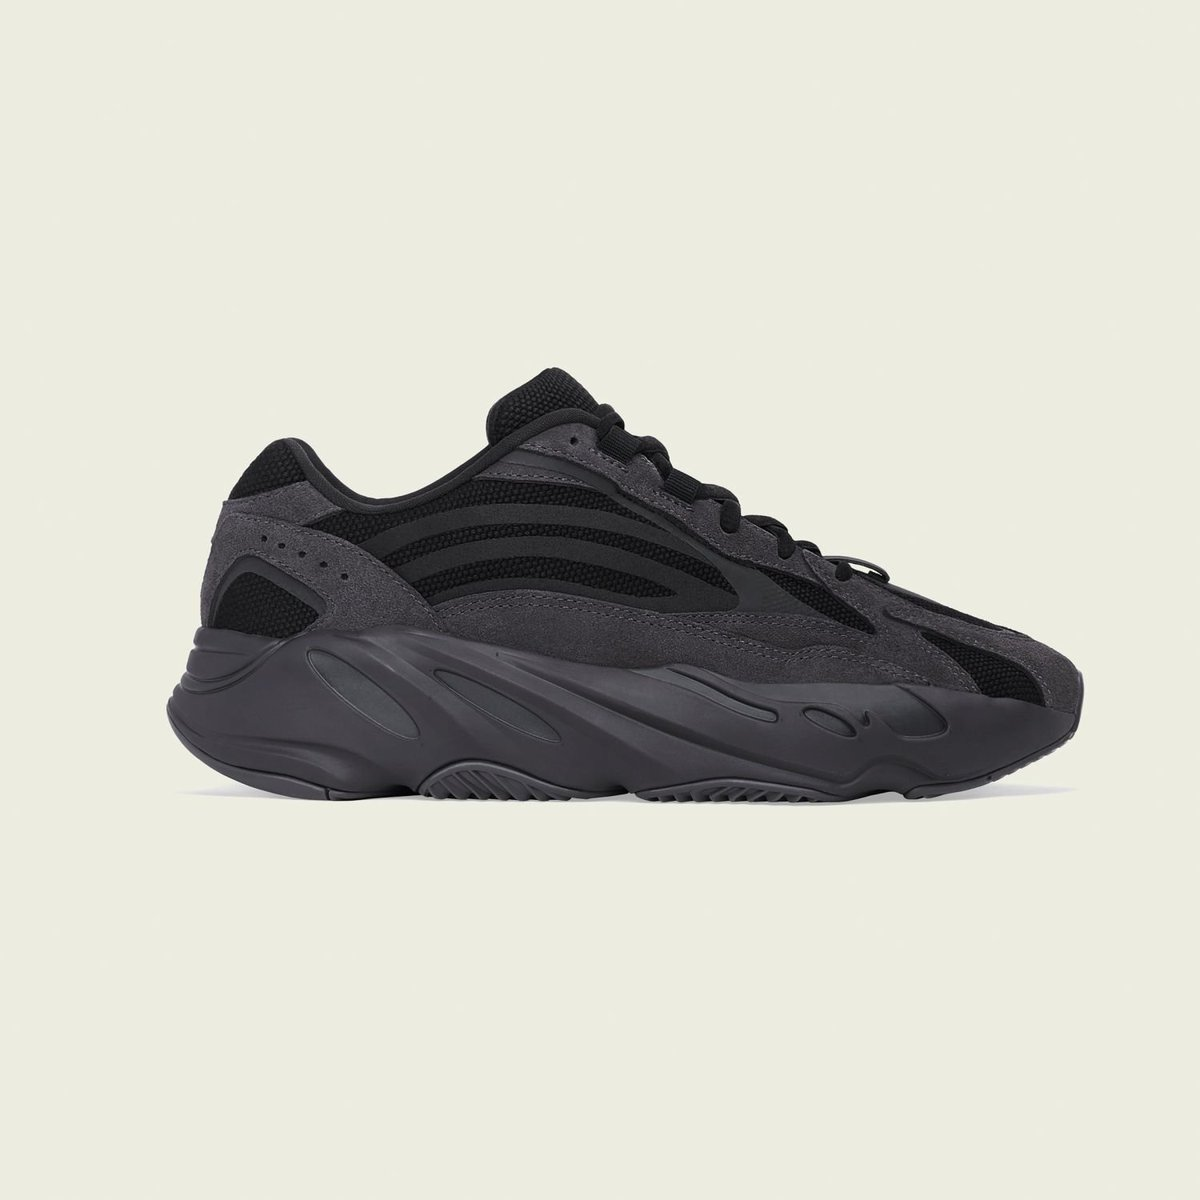 premium selection f1a2e ffb56 YEEZY BOOST 700 V2 VANTA PRE-ORDERS AVAILABLE MAY 26 ON  http   YEEZYMAFIA.COM pic.twitter.com nrB0bUu5Io